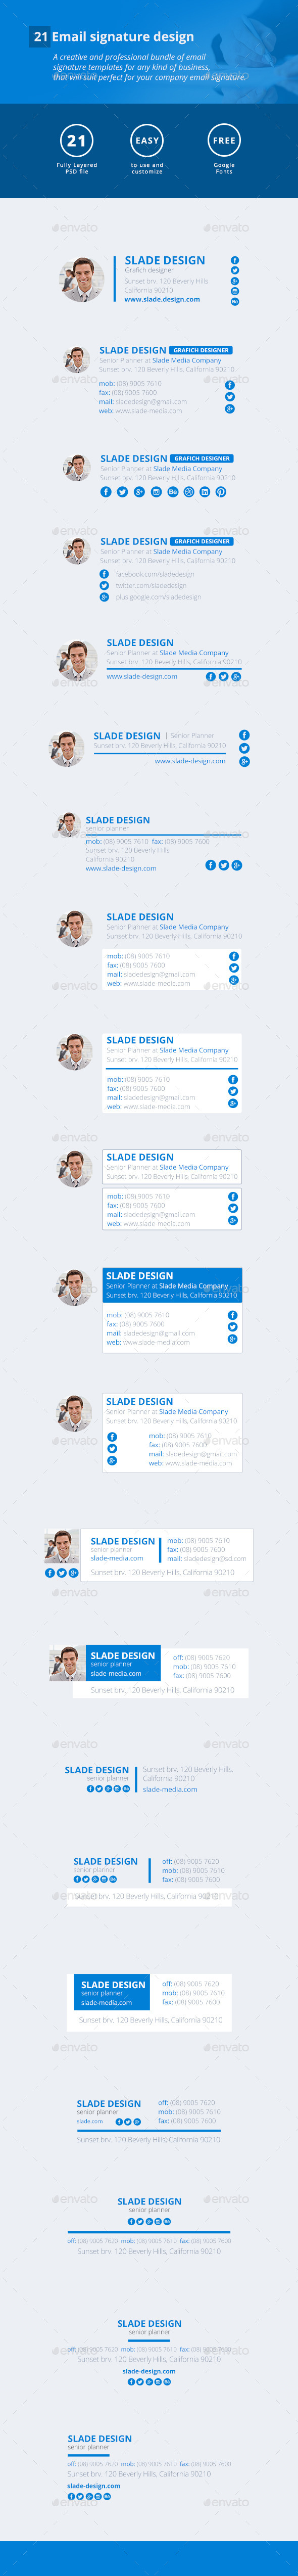 21 Email Signature Design - Miscellaneous Social Media